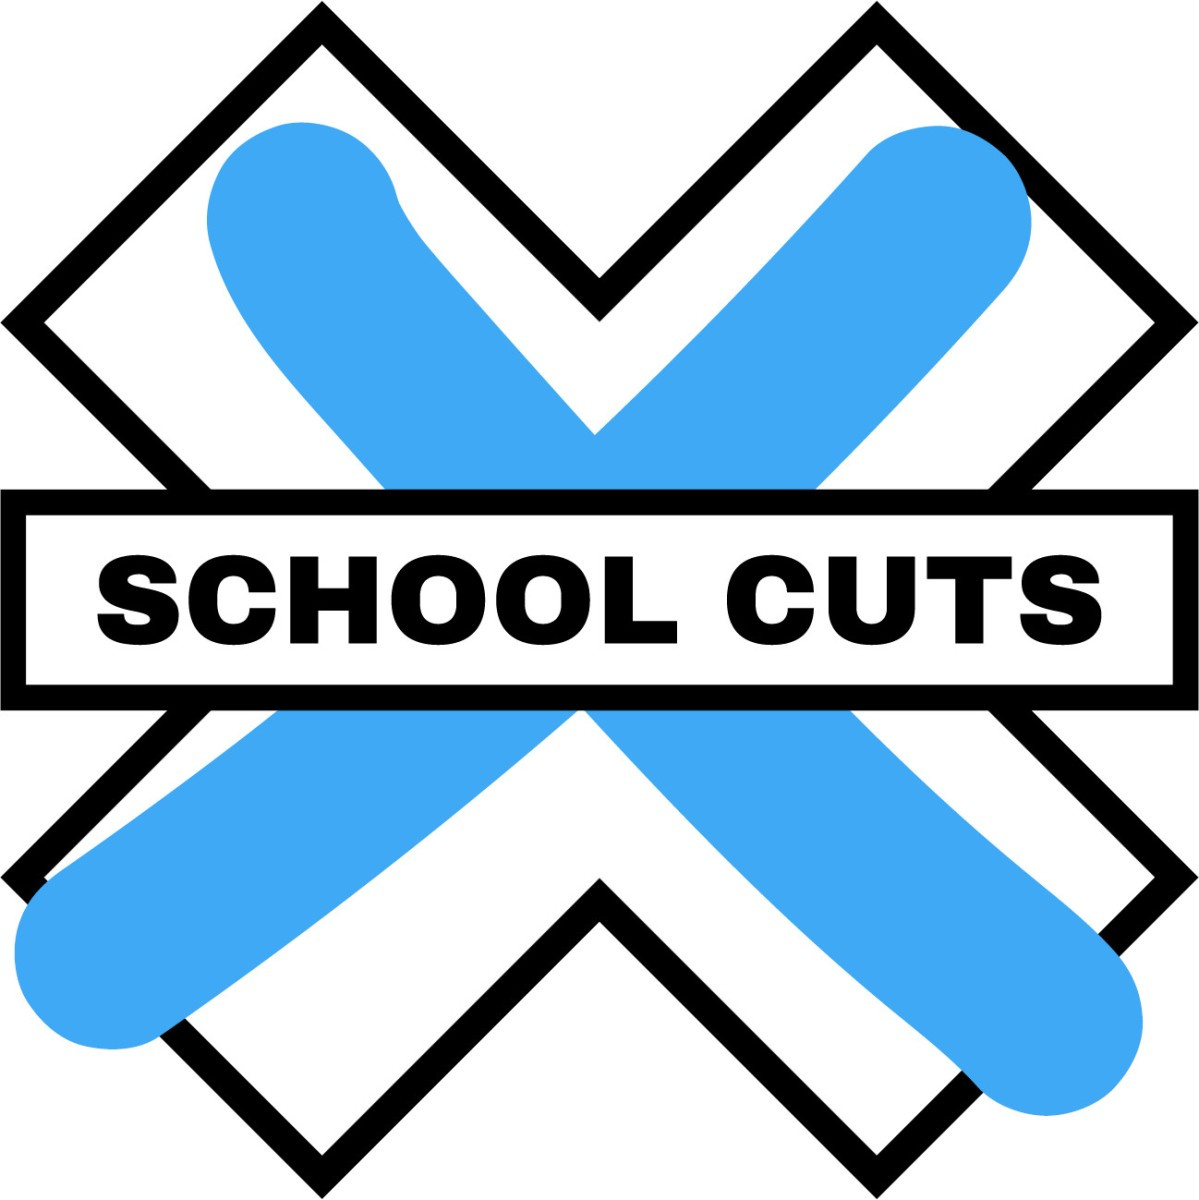 school cuts logo